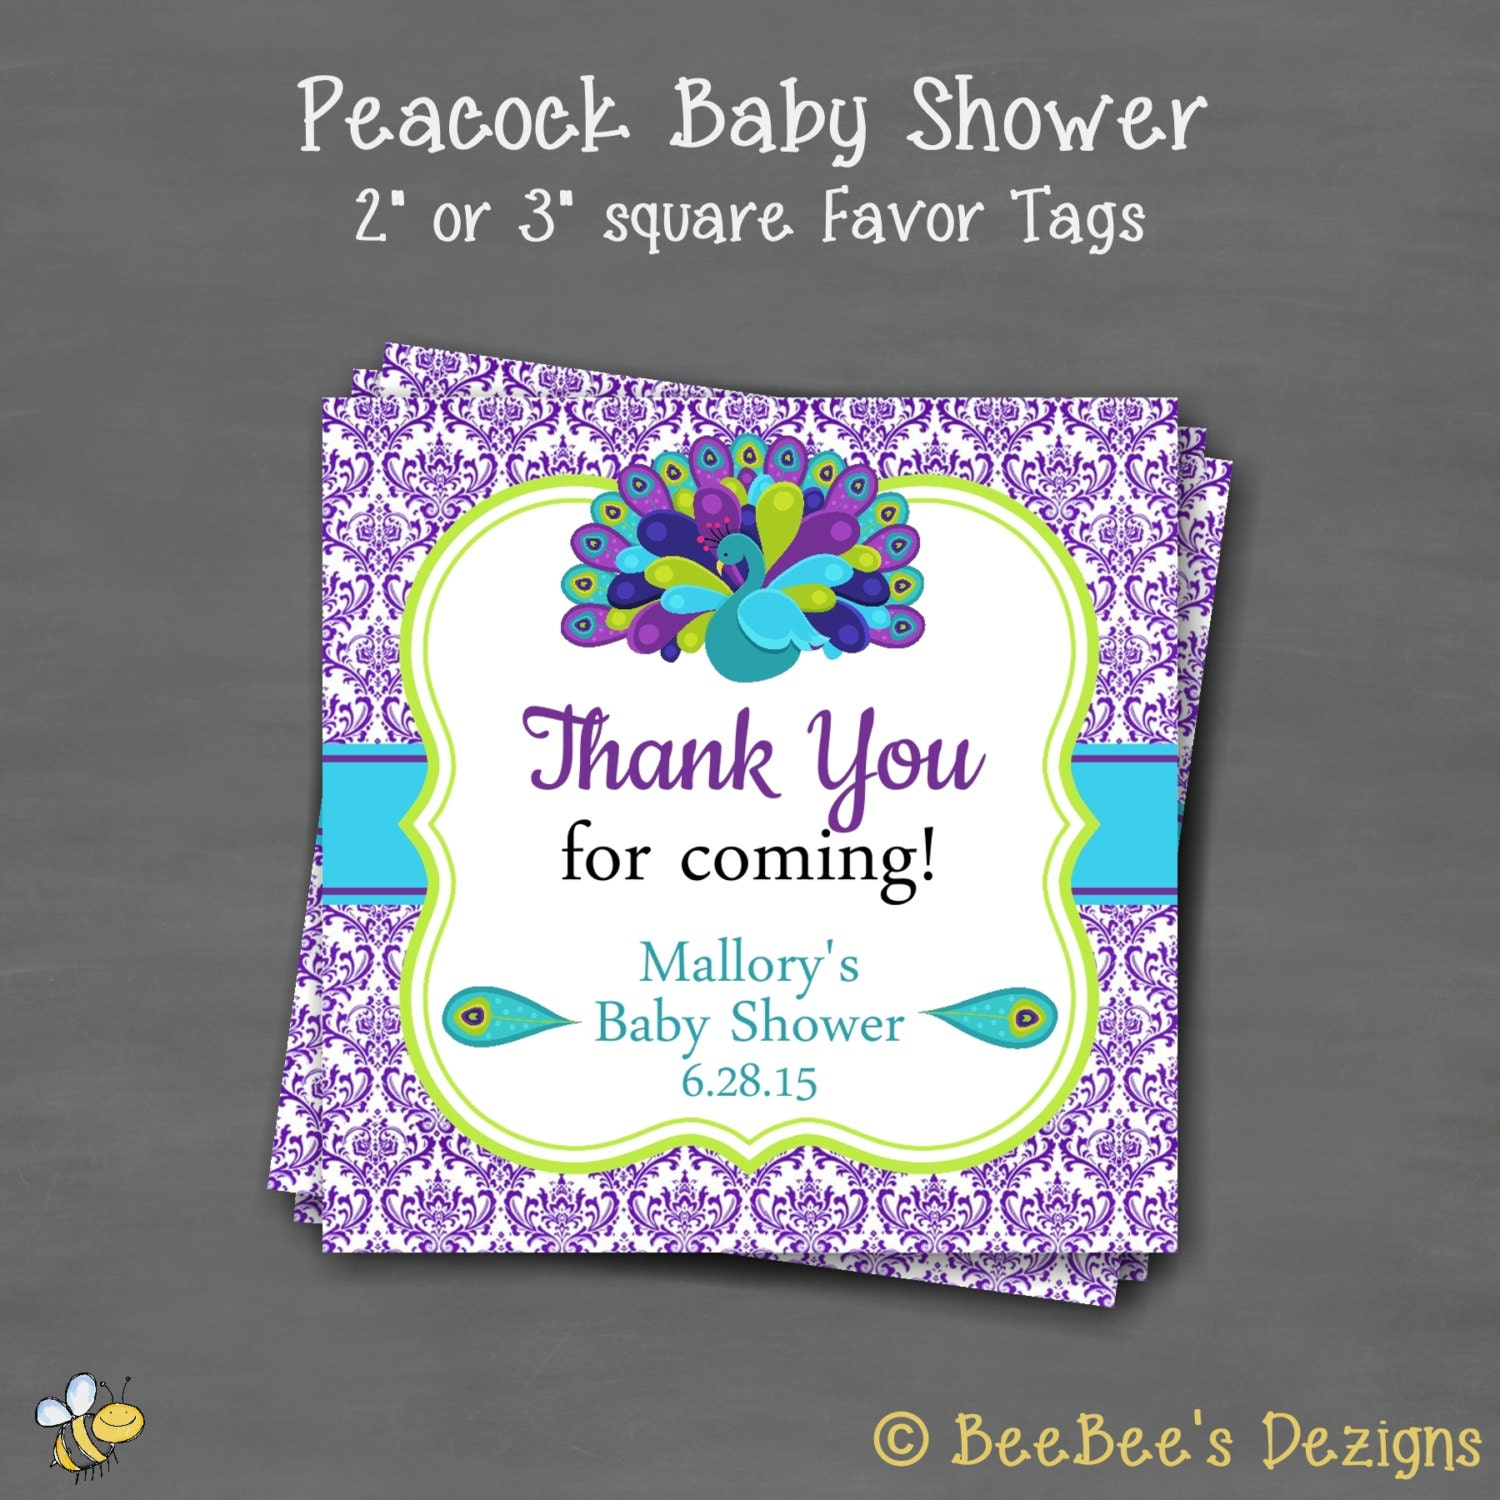 Peacock baby shower favor gift tag sticker label square tag custom printable purple teal for Shower favor tag